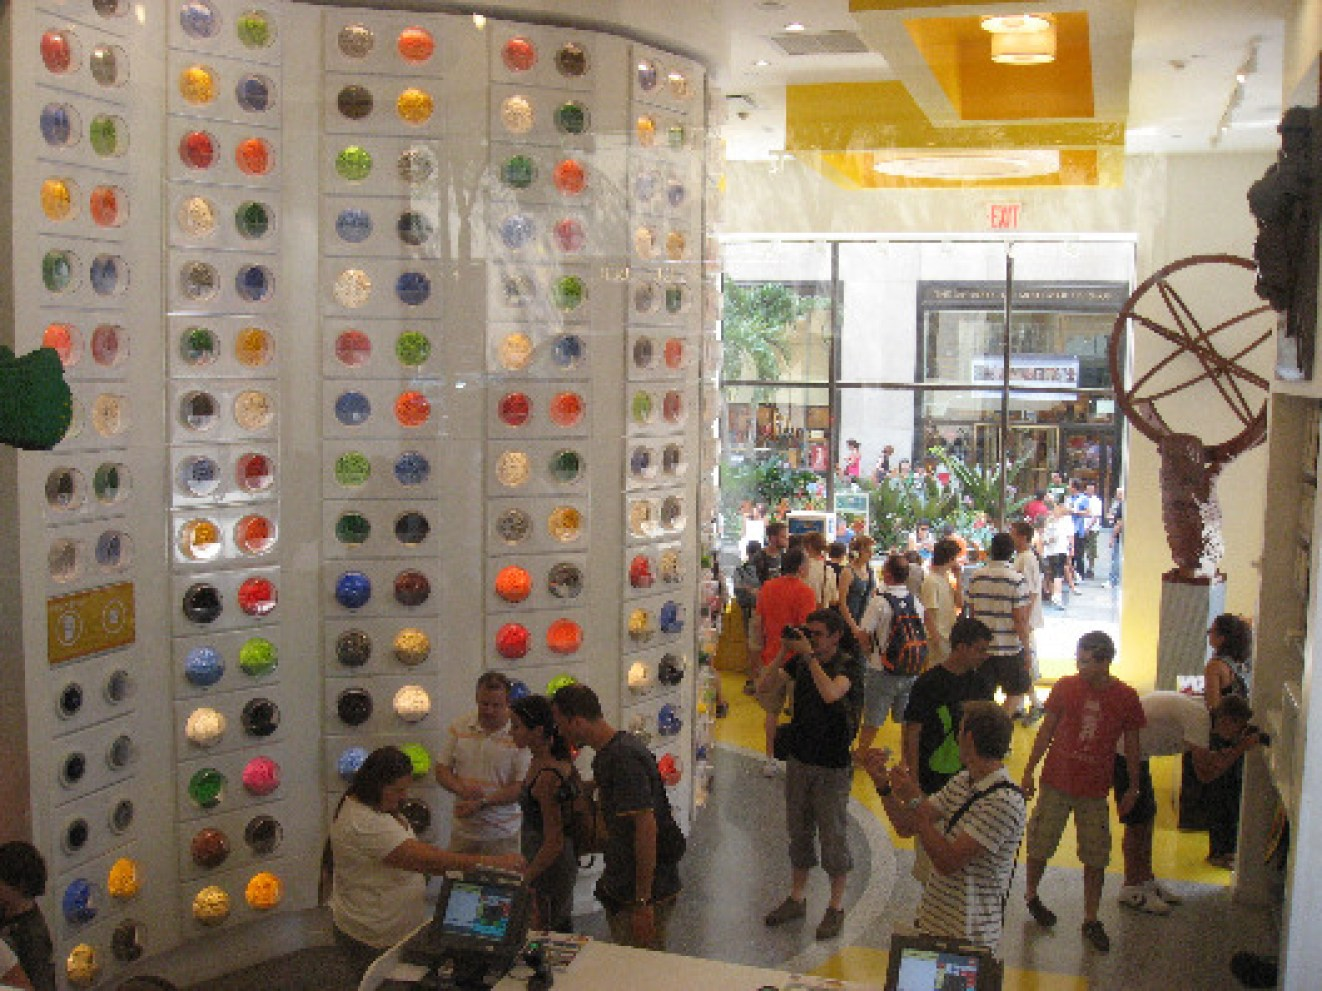 lego-store-nyc-rockefeller-center-1